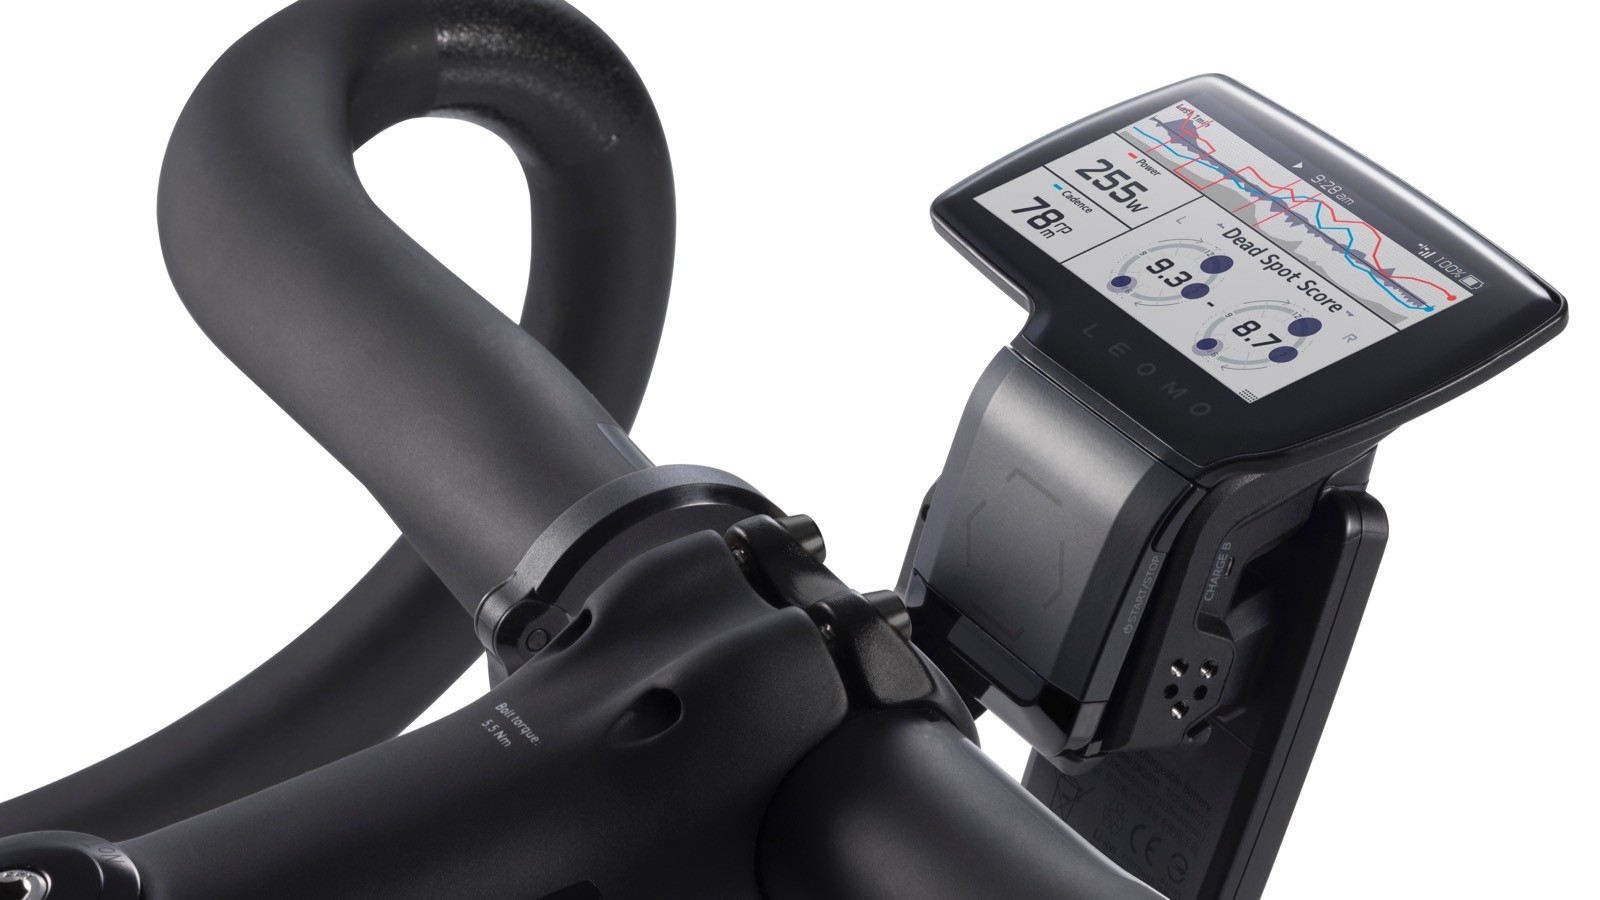 The GPS / ANT+ head unit talks to your existing measurement tools like power meters and heart rate straps